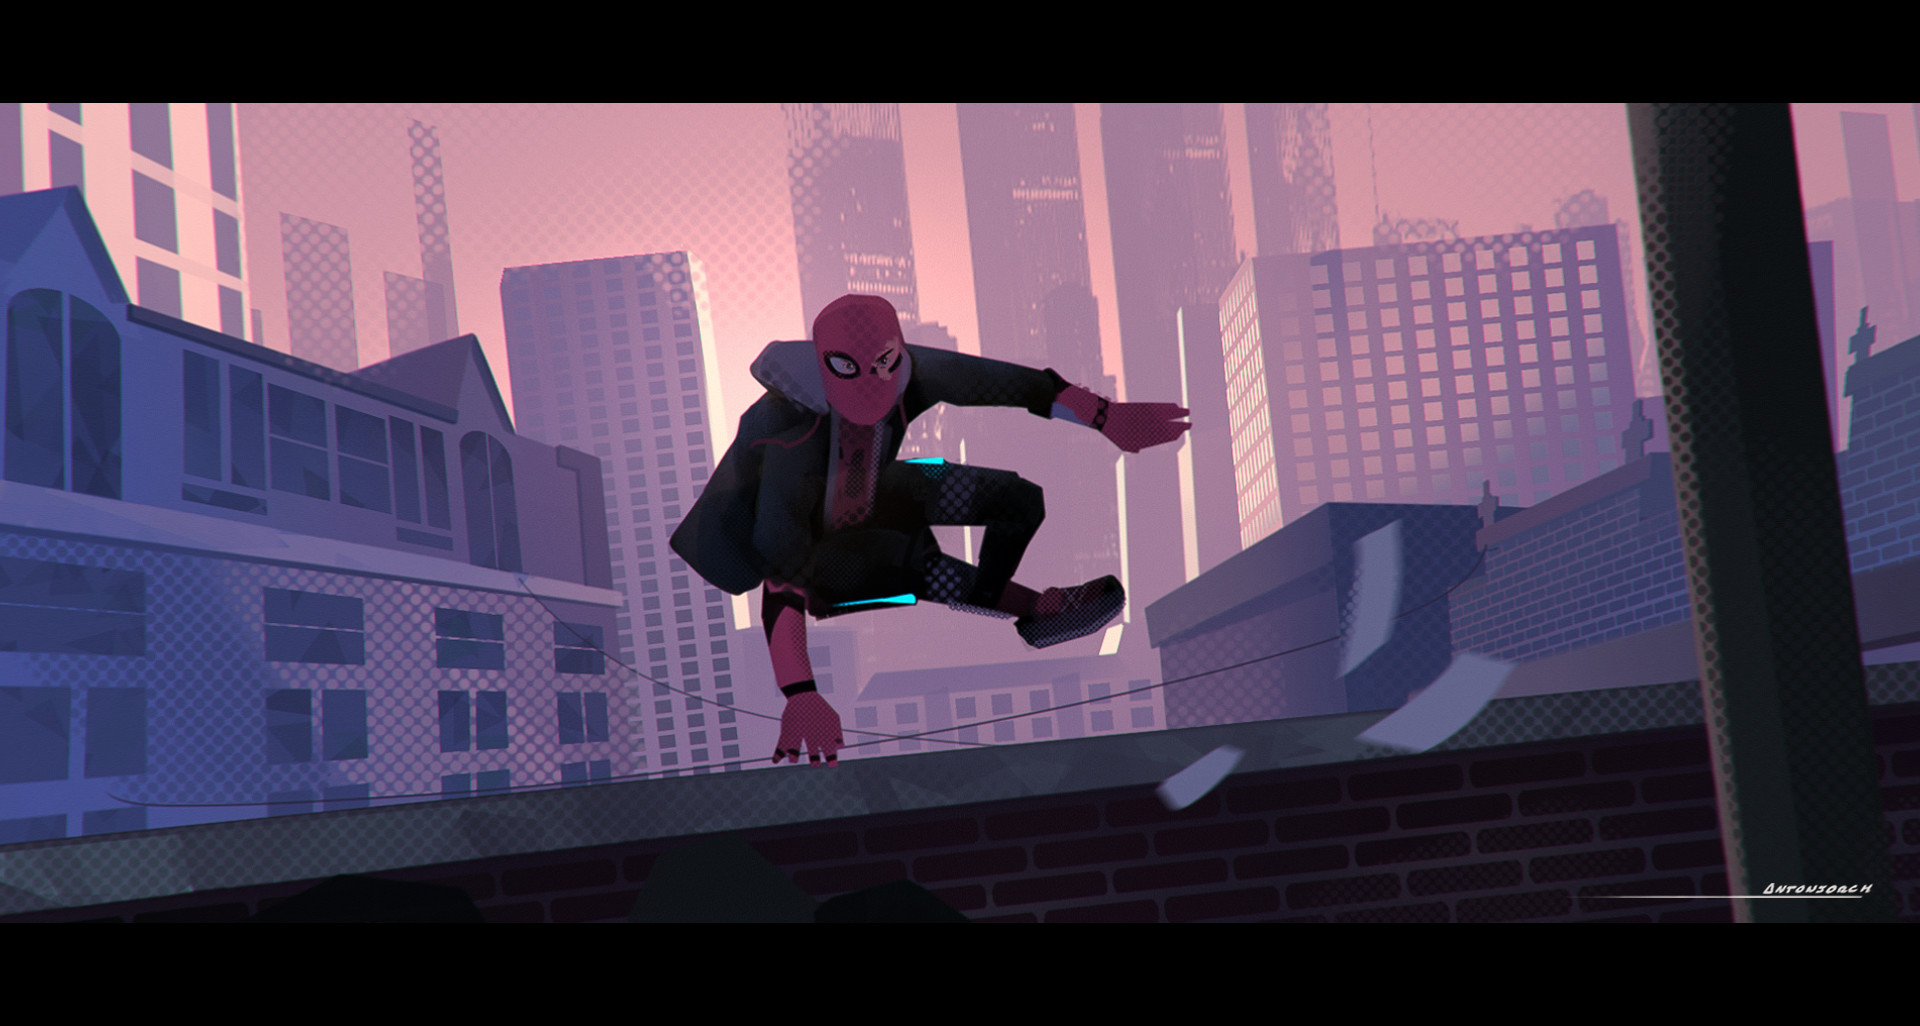 Jorge gonzalez into the spiderverse fan art finished